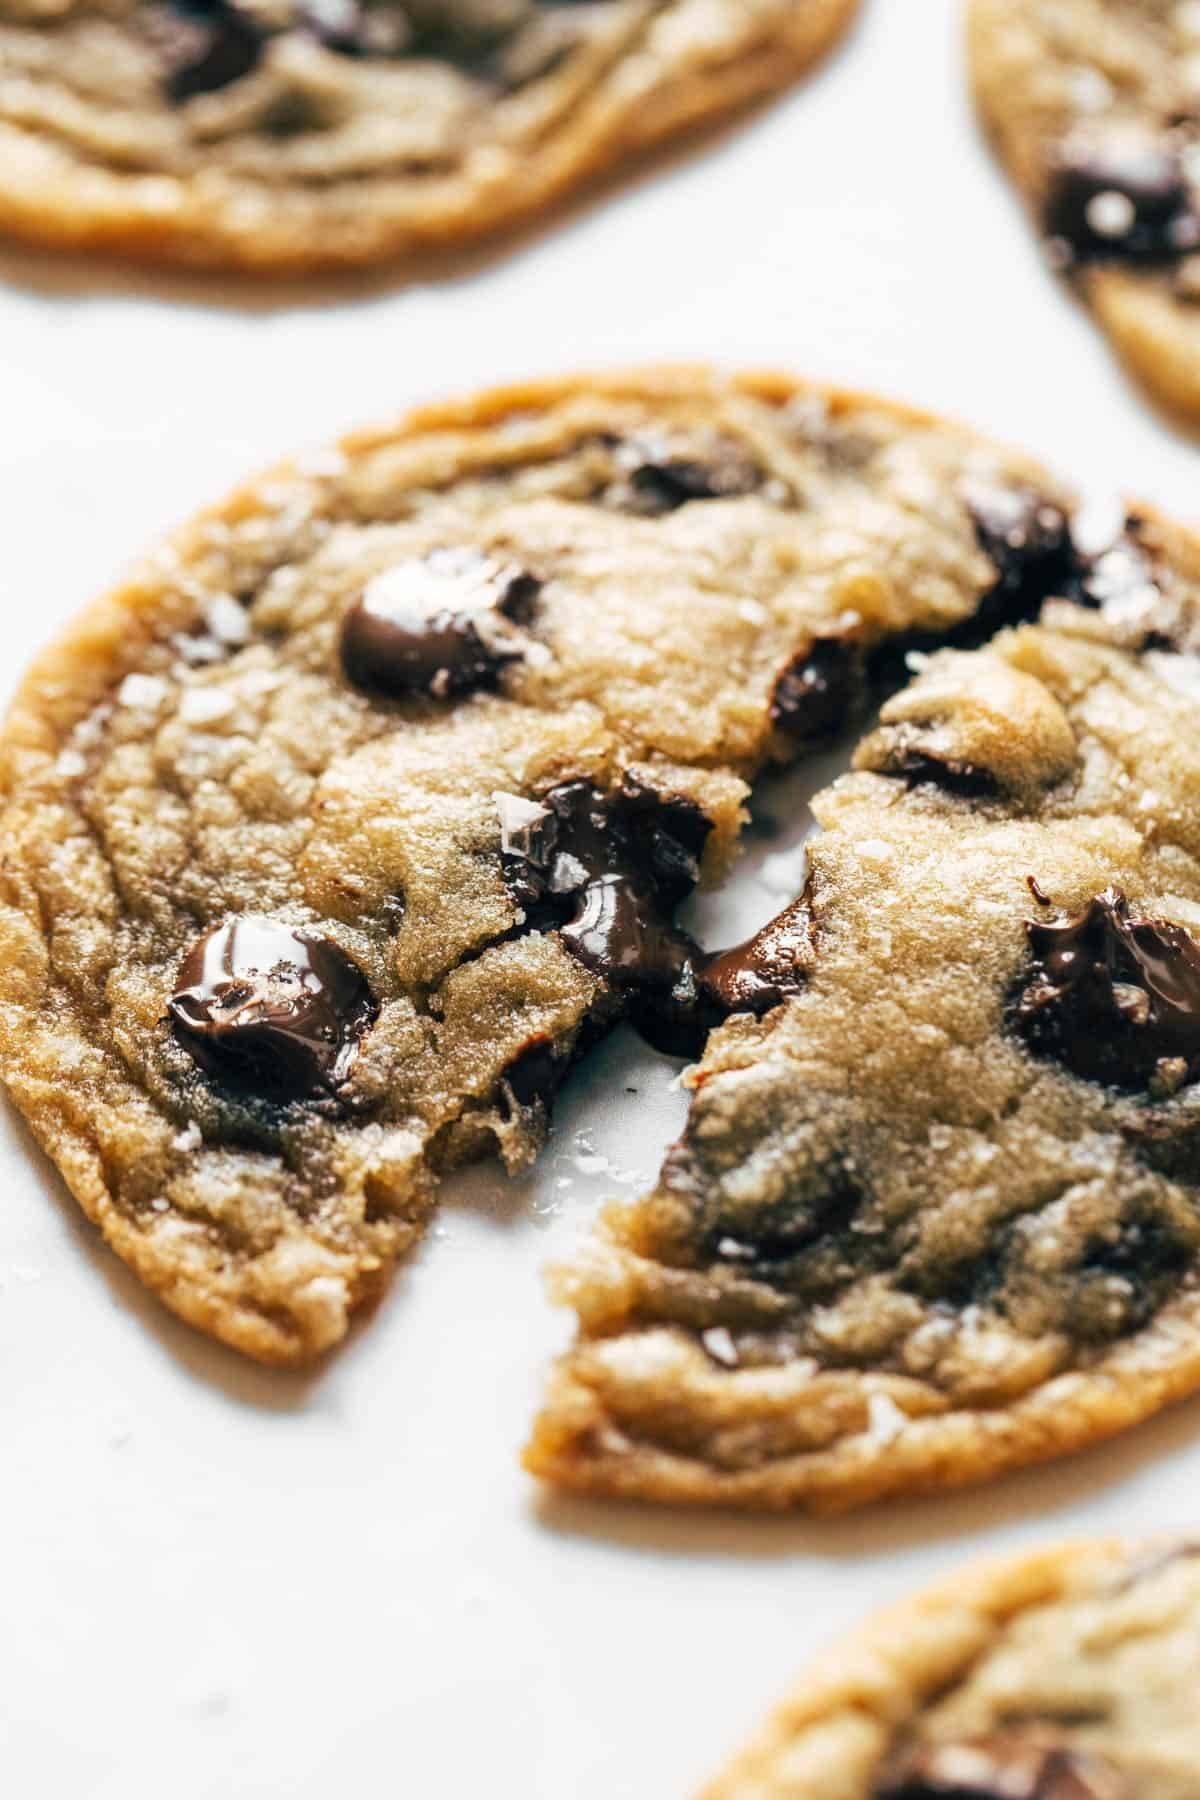 Chocolate Chip Cookie-copyrighted image